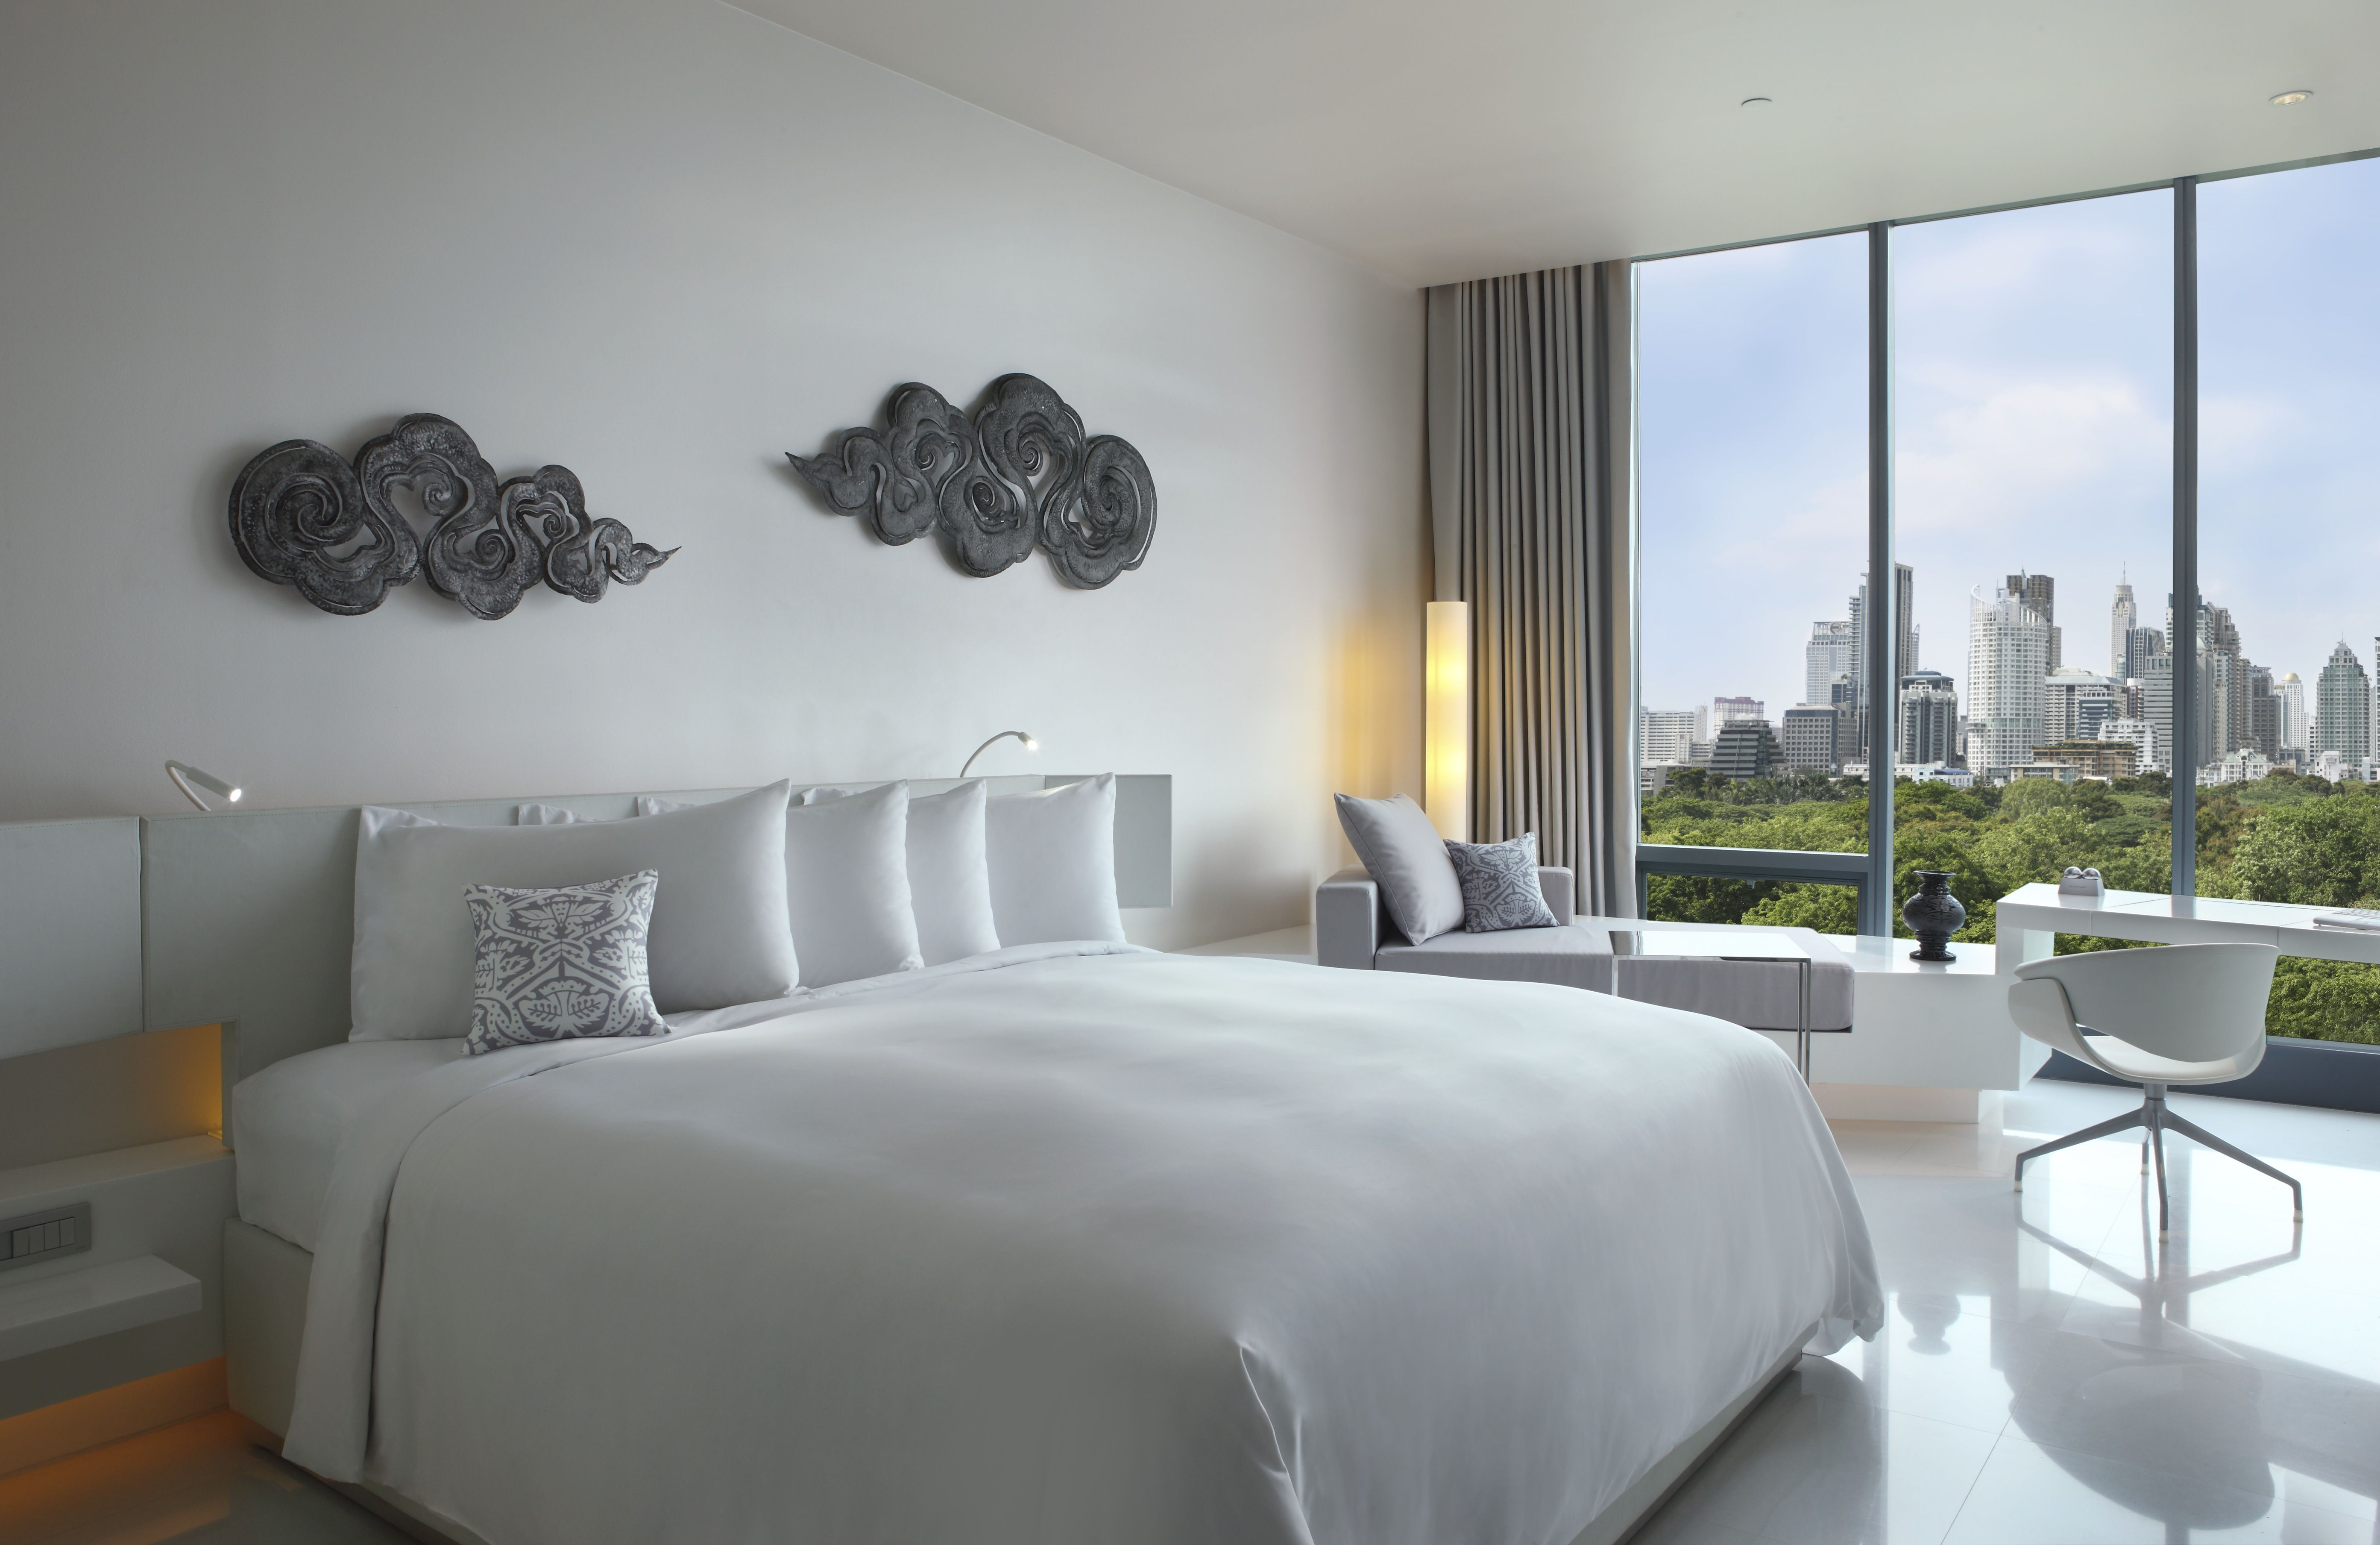 So Comfy; Metal Element rooms represent Purity and Modernity. Somchai Jongsaeng, the designer of Metal element rooms is known for his philosophical approach in creating spaces as reflections of their locale. He has made the Metal element rooms simple and tranquil, immaculate spaces that are bright and welcoming through their different shades of white and sleek metallic details. #design #boutique #hotel #Bangkok #BTS #MRT #skytrain #Sathorn #Sukhumvit #travel #idea